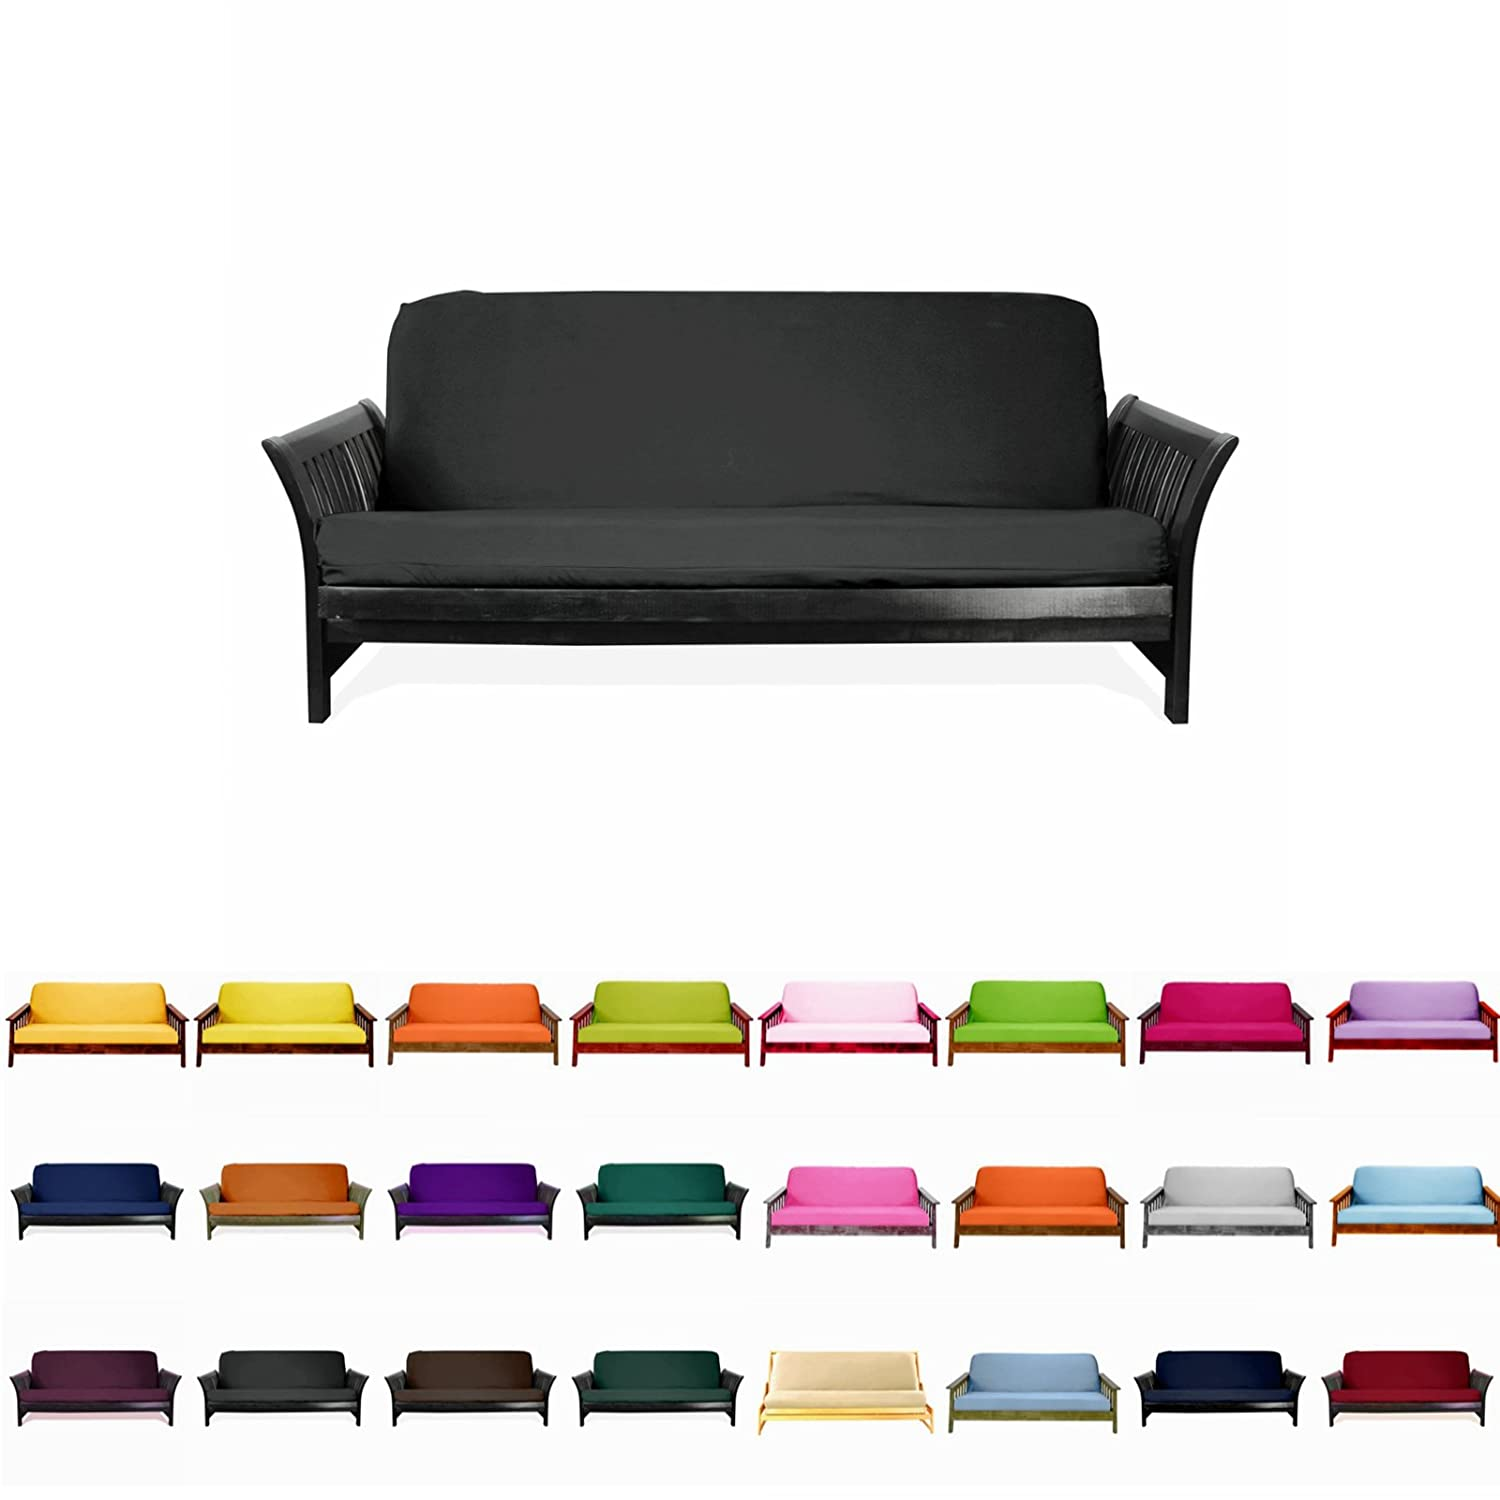 Charmant Amazon.com: Magshion F Futon F Blk Colorful Cover Slipcover, Full Size,  Black: Kitchen U0026 Dining